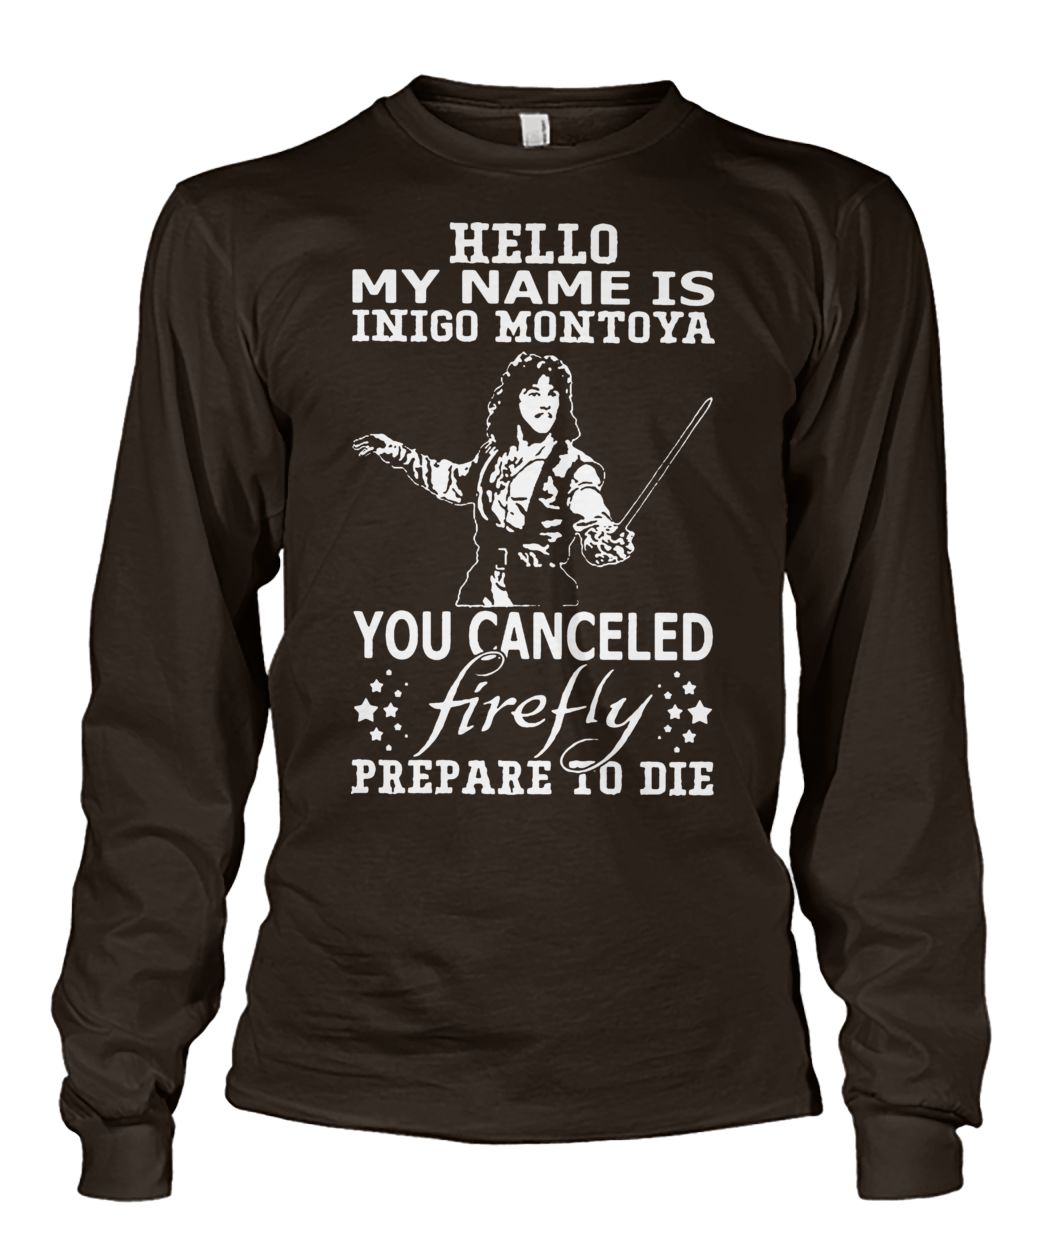 Hello my name is inigo montoya you canceled firefly prepare to die unisex long sleeve